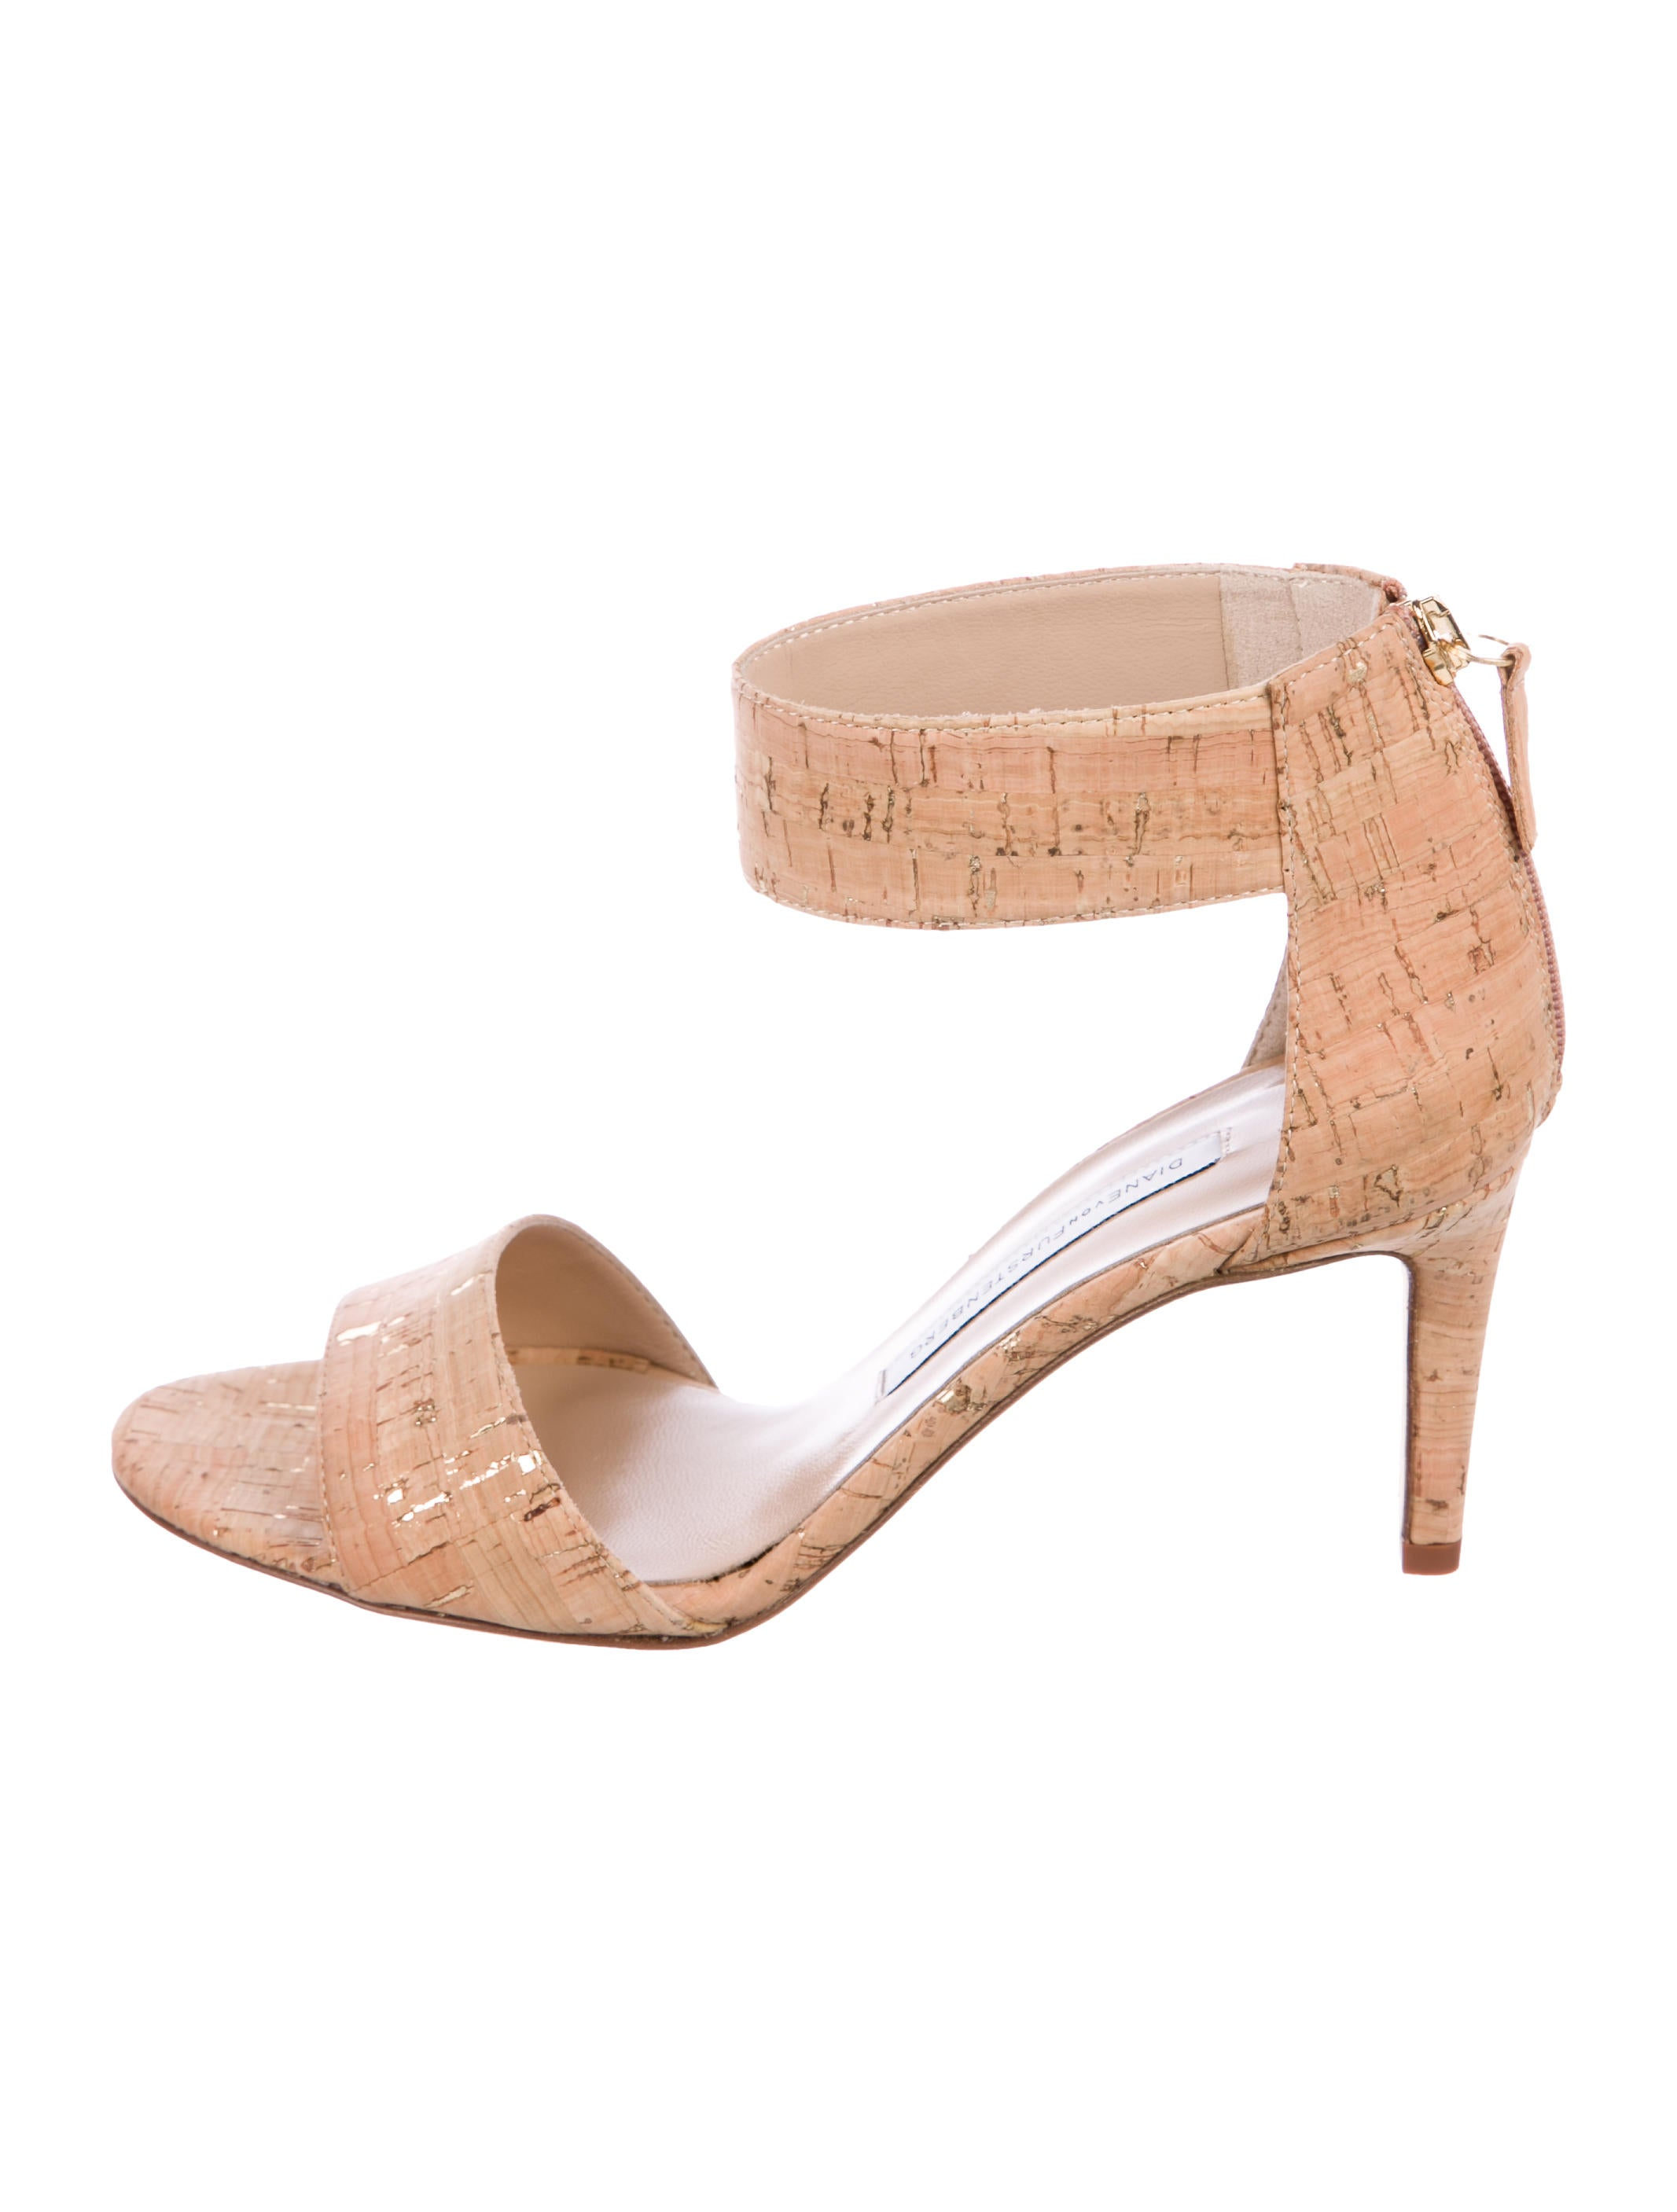 Diane von Furstenberg Kinder Cork Sandals w/ Tags free shipping discount outlet cheap price clearance nicekicks 7FTZT4juvi